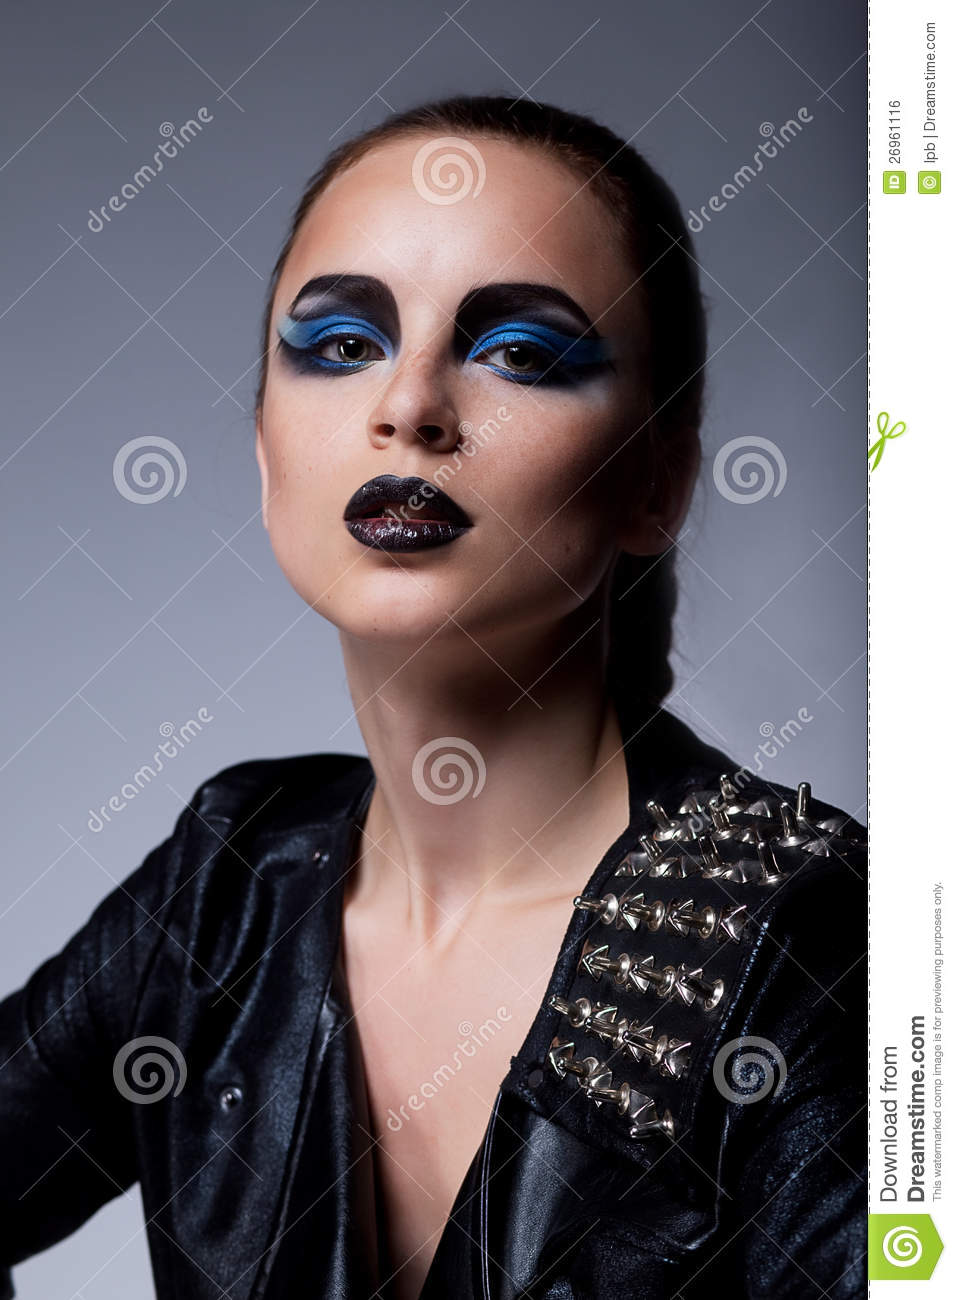 More similar stock images of ` Beautiful fashion arrogant woman with ...